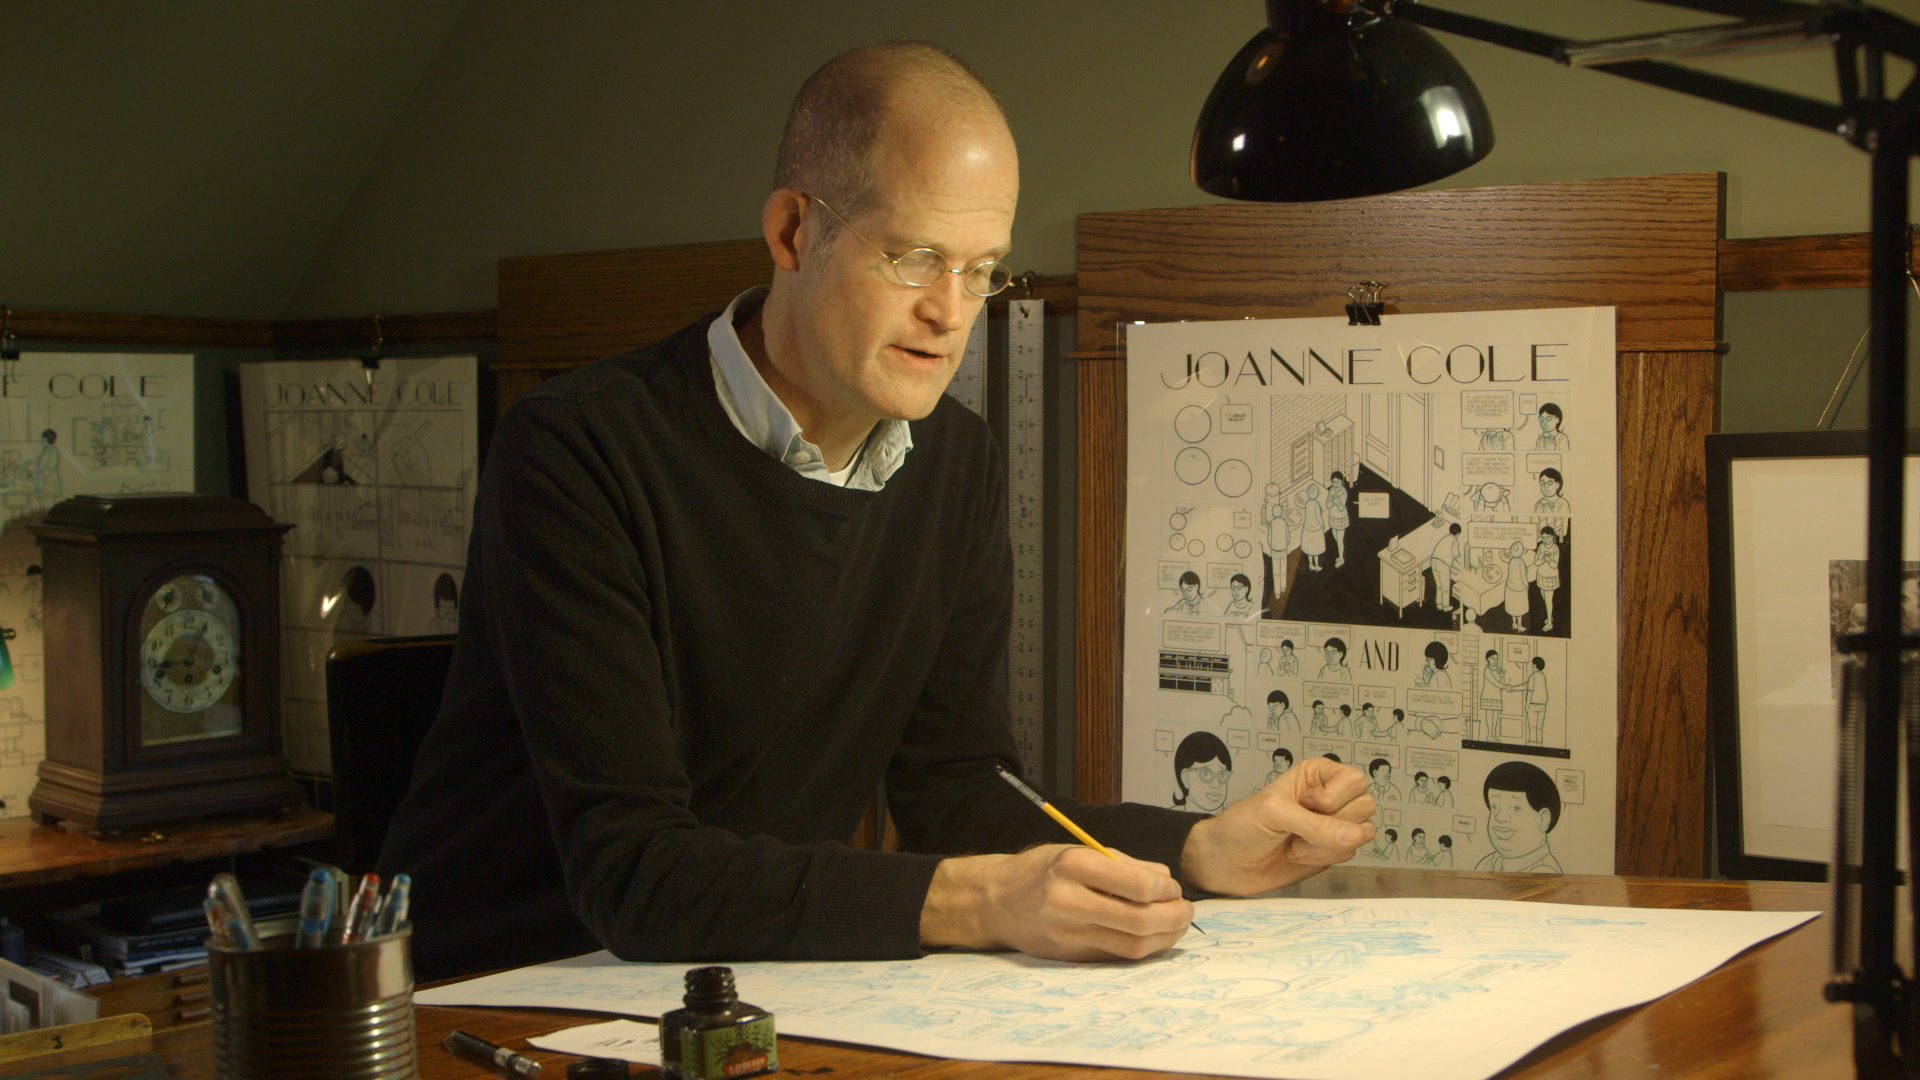 Chris Ware in his studio in Oak Park, USA, 2016. Production still from ART21's series Art in the Twenty-First Century, Season 8, 2016. Cinematography: Keith Walker. © ART21, Inc. 2016.